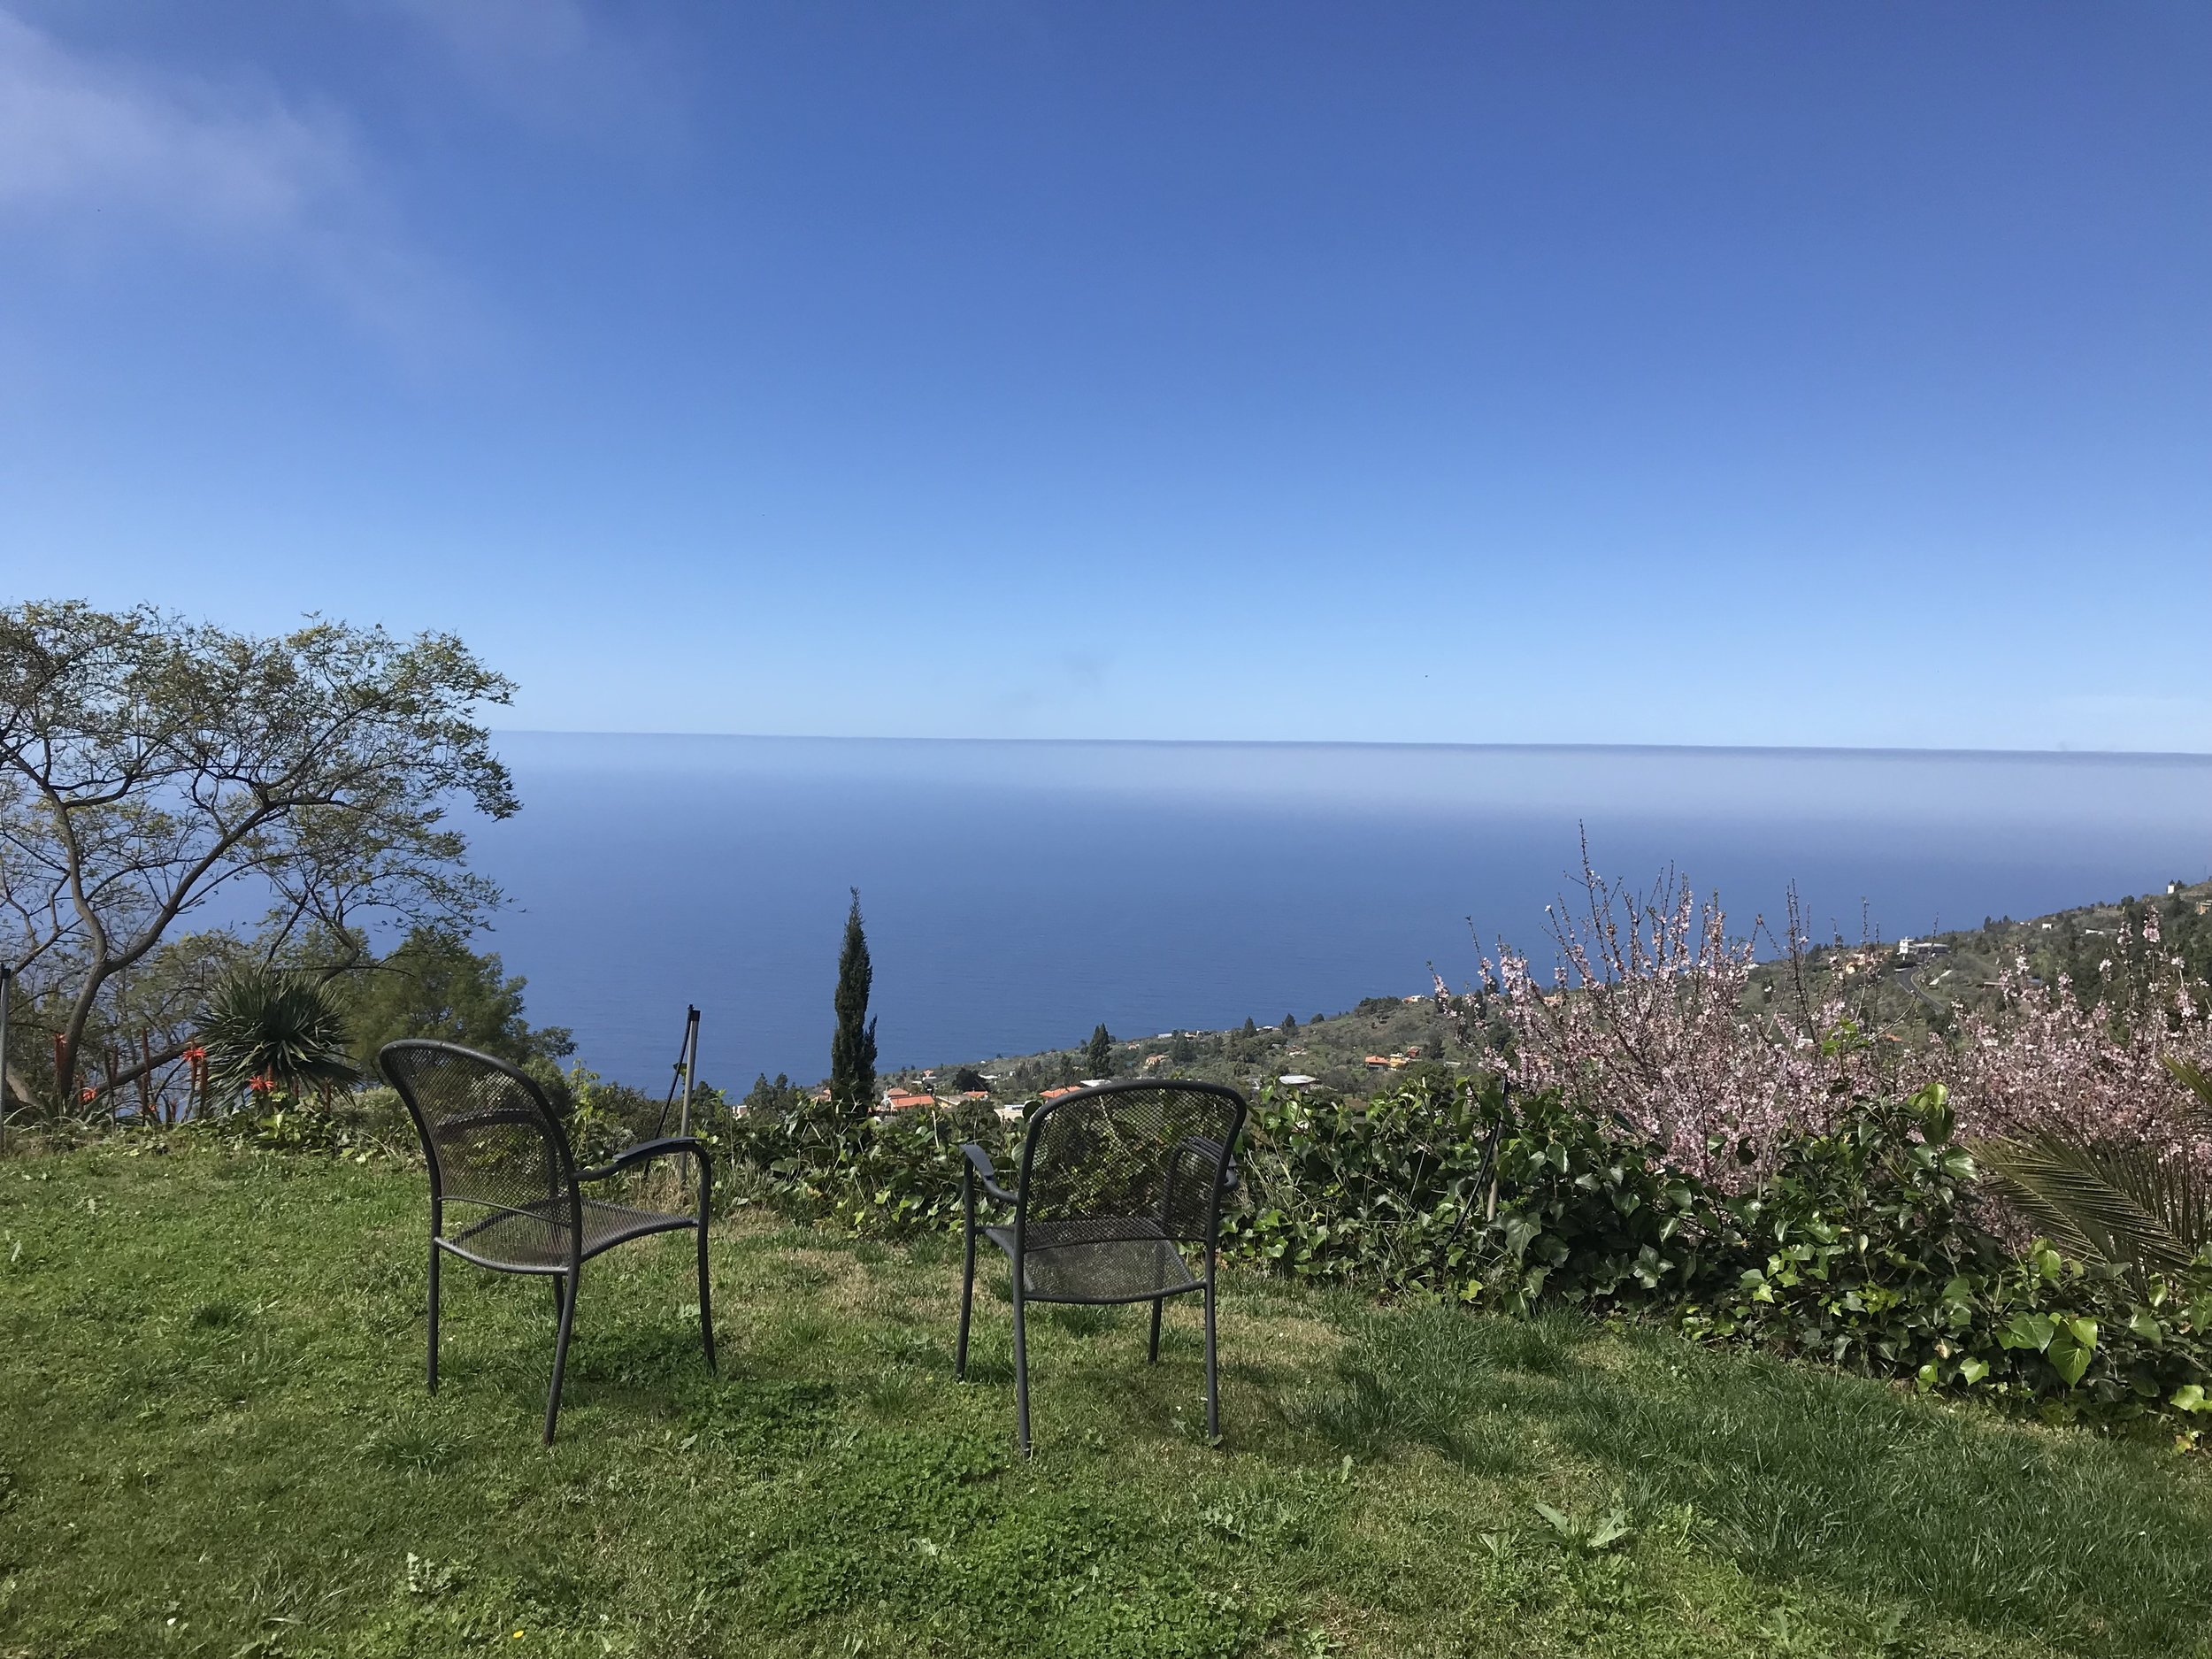 Beautiful view in La Palma, Canary Island | 5 Food Lessons A European Adventure Taught This Southern Gal #lapalma #canaryislands